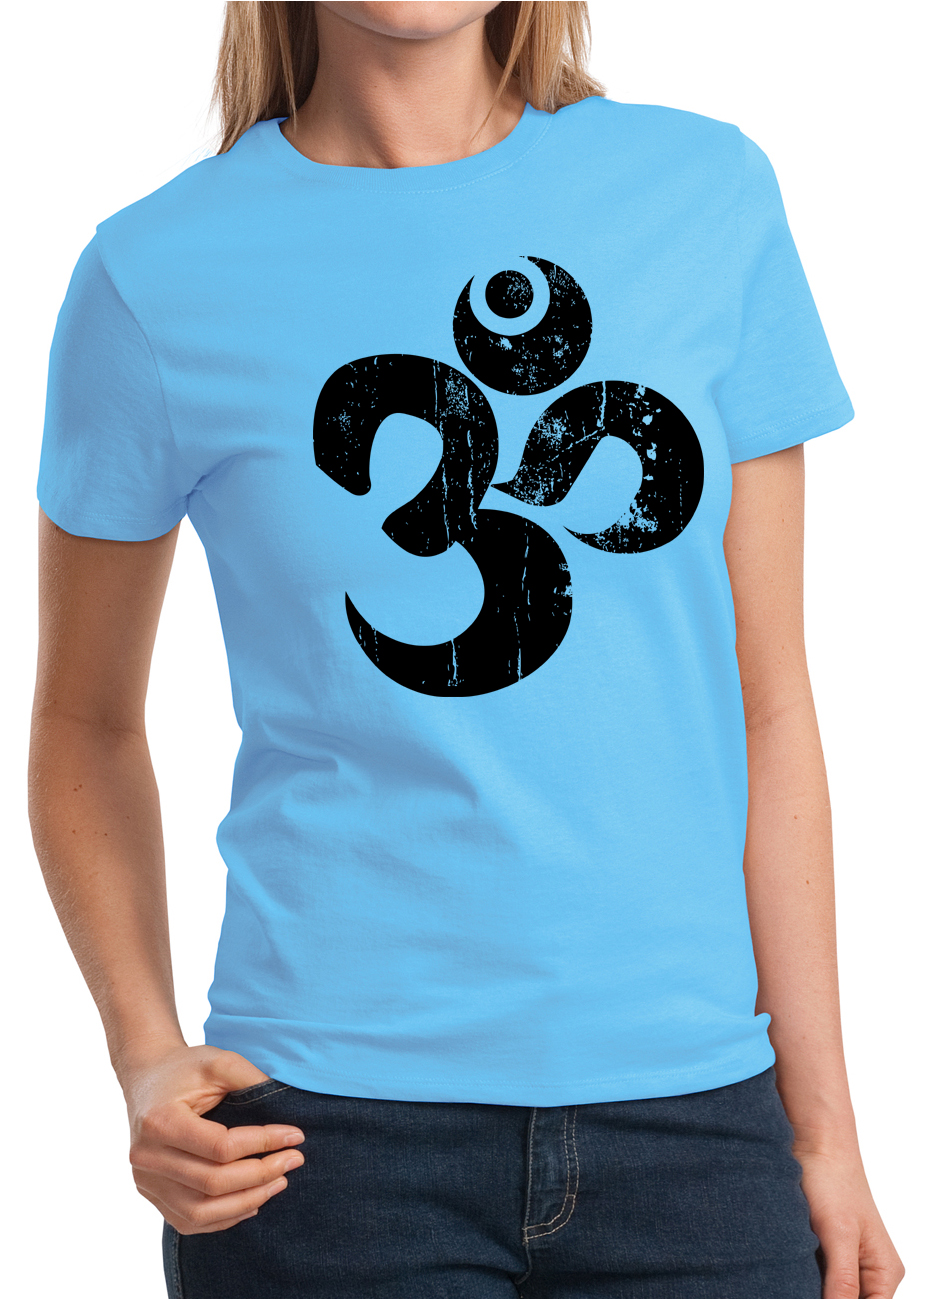 Ladies yoga shirt black distressed om tee t shirt black for How to make a distressed shirt